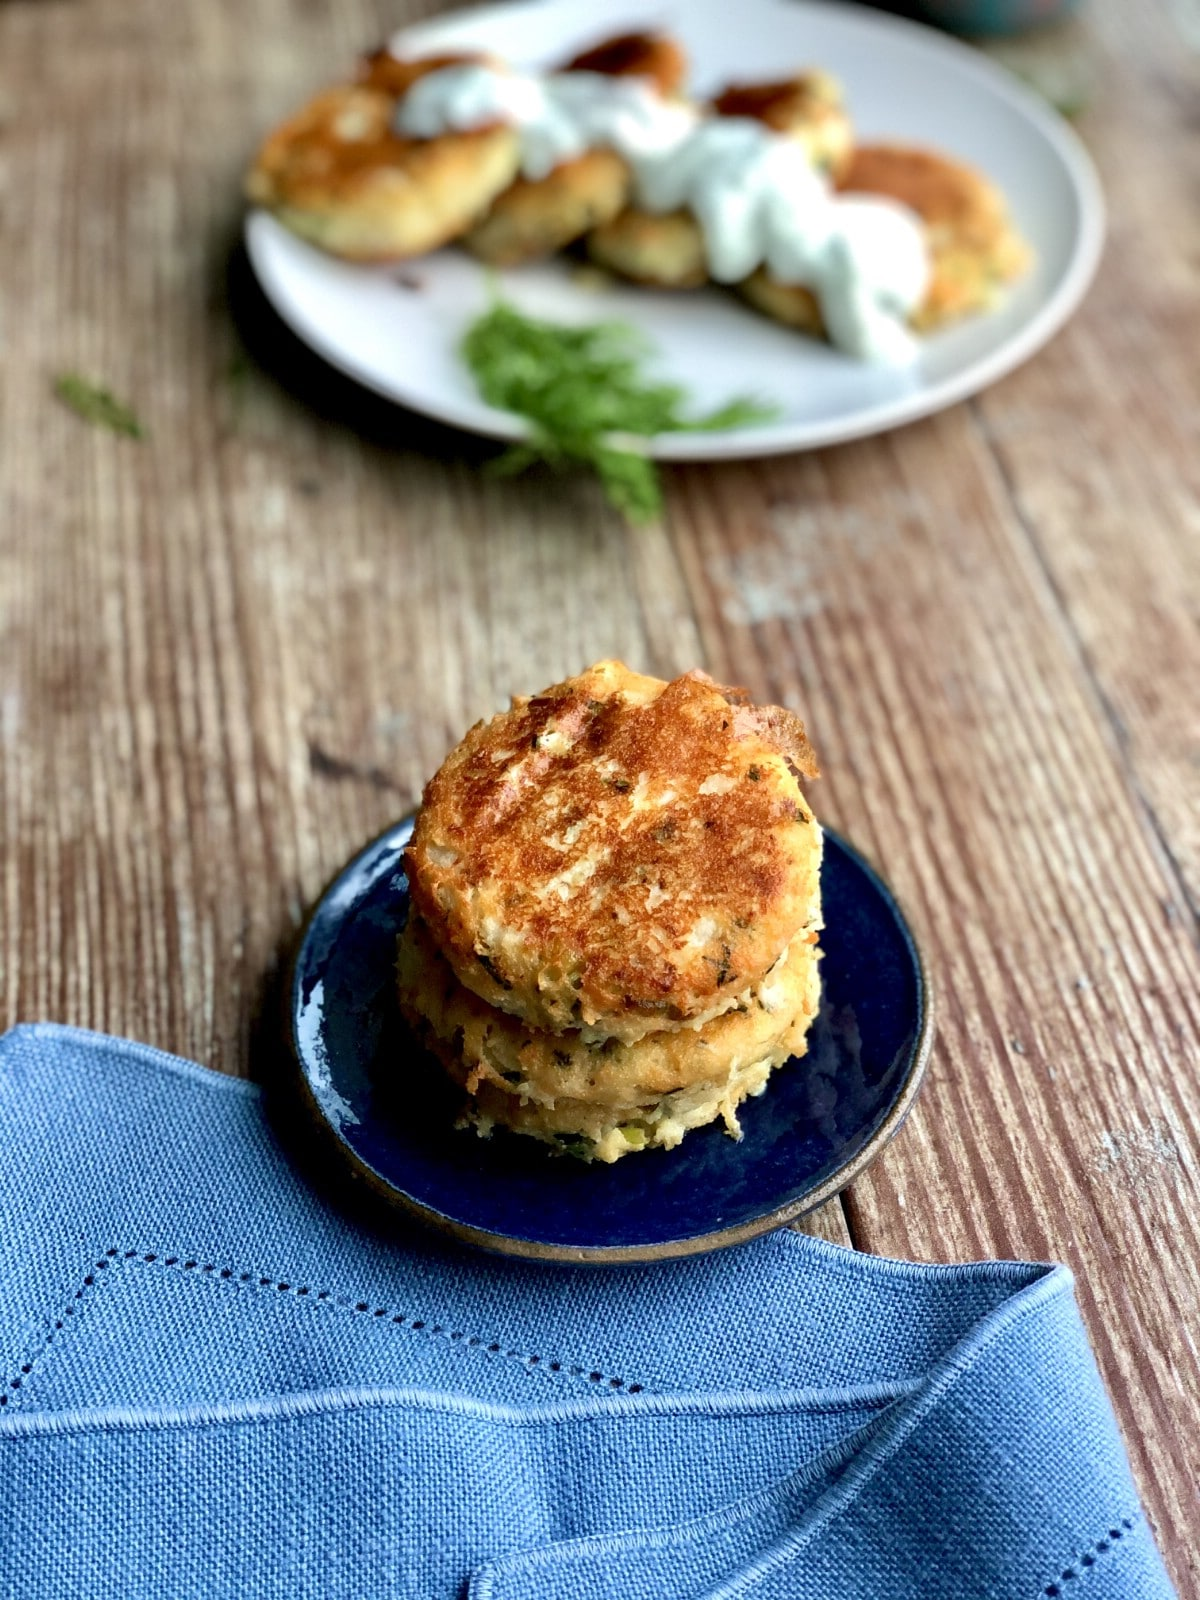 Stack of potato cakes on blue plate